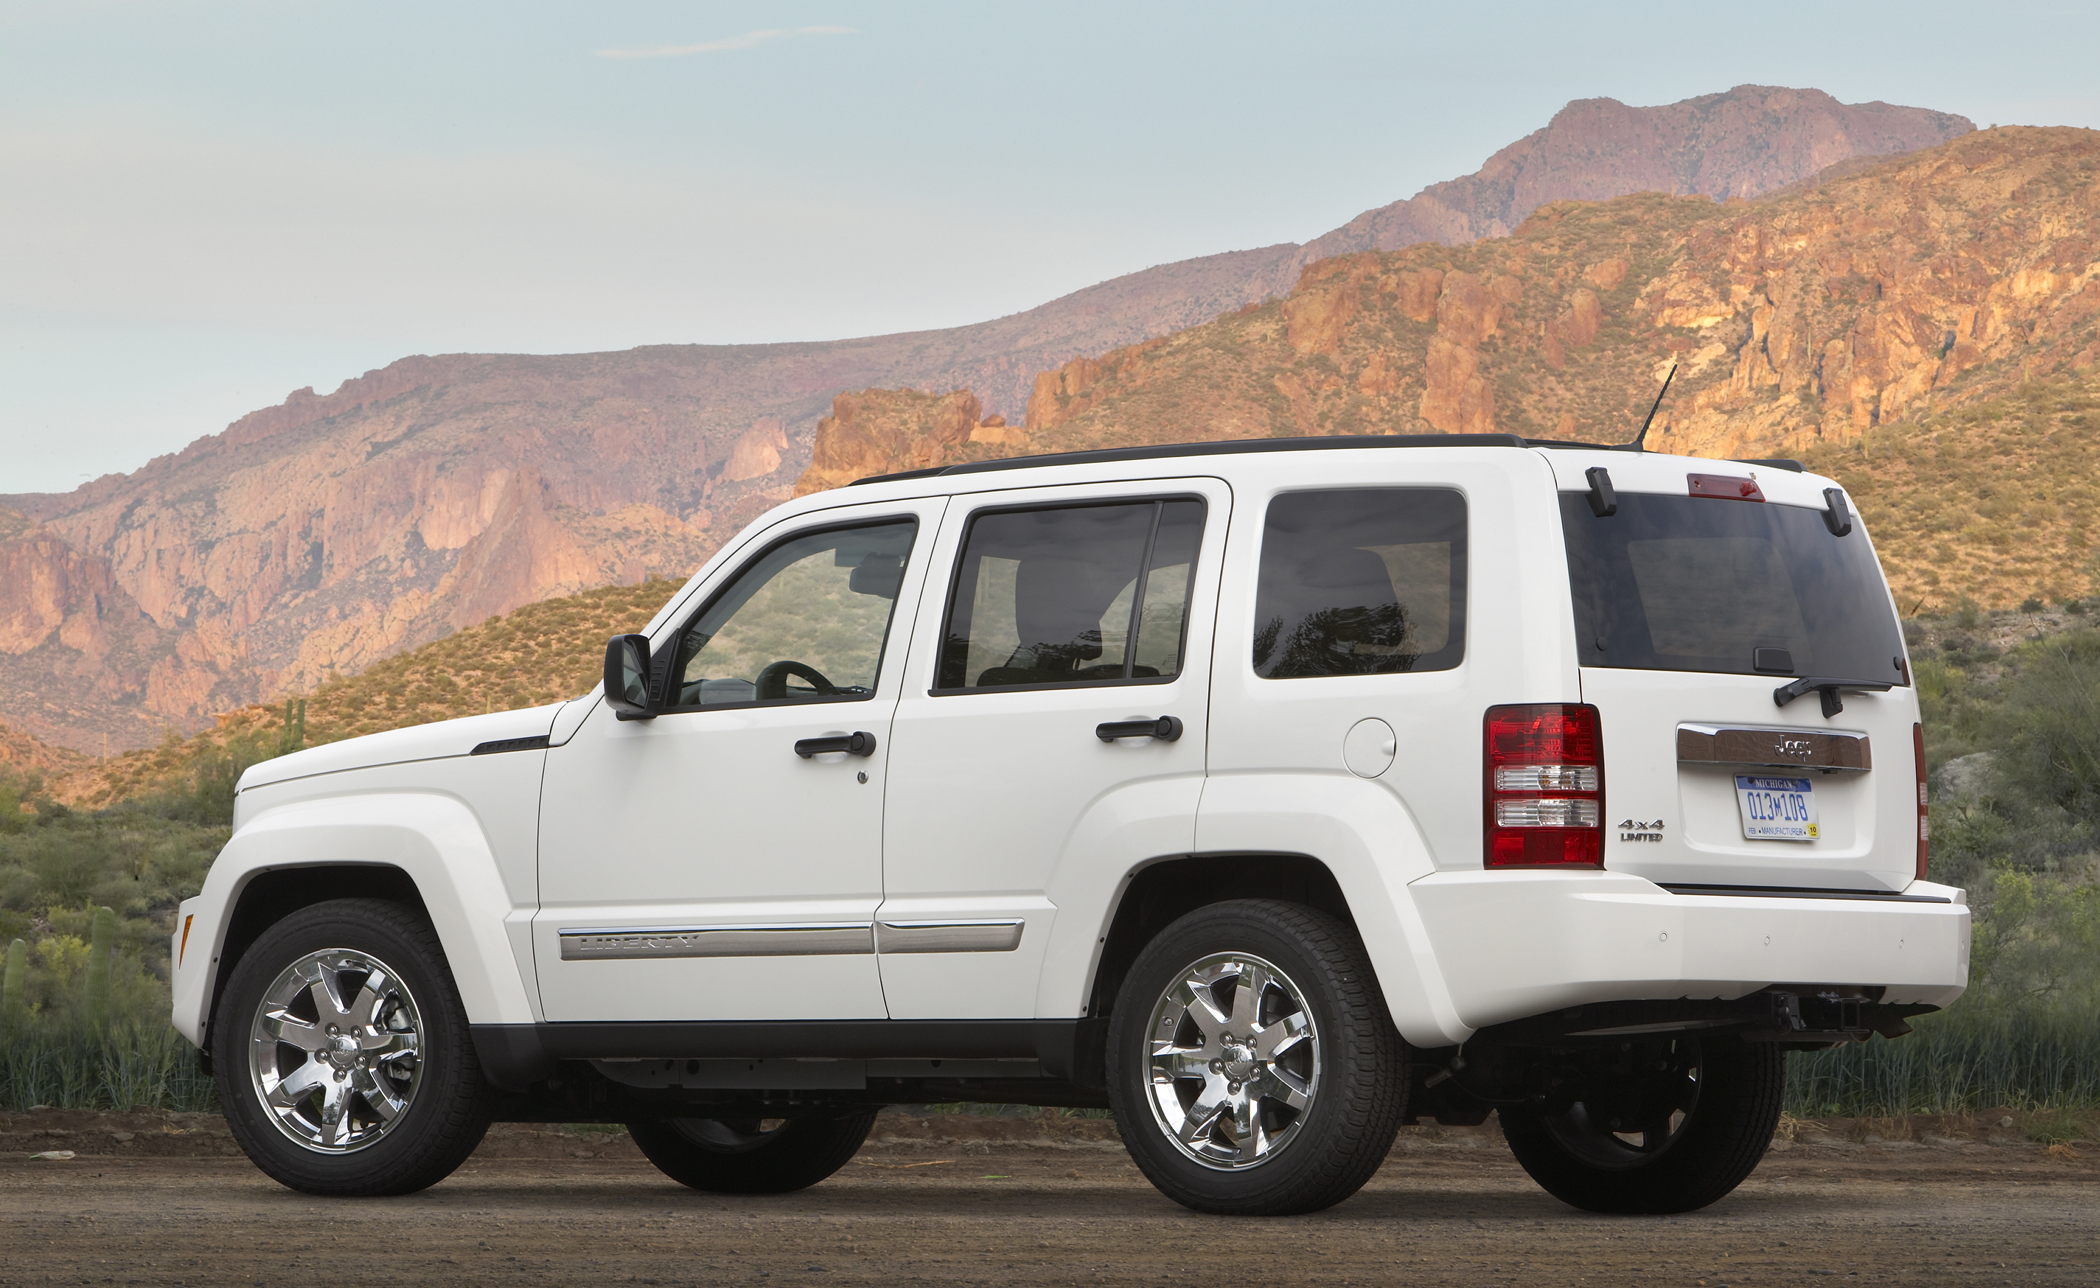 2010 jeep liberty offers wrangler-style open air driving - get off